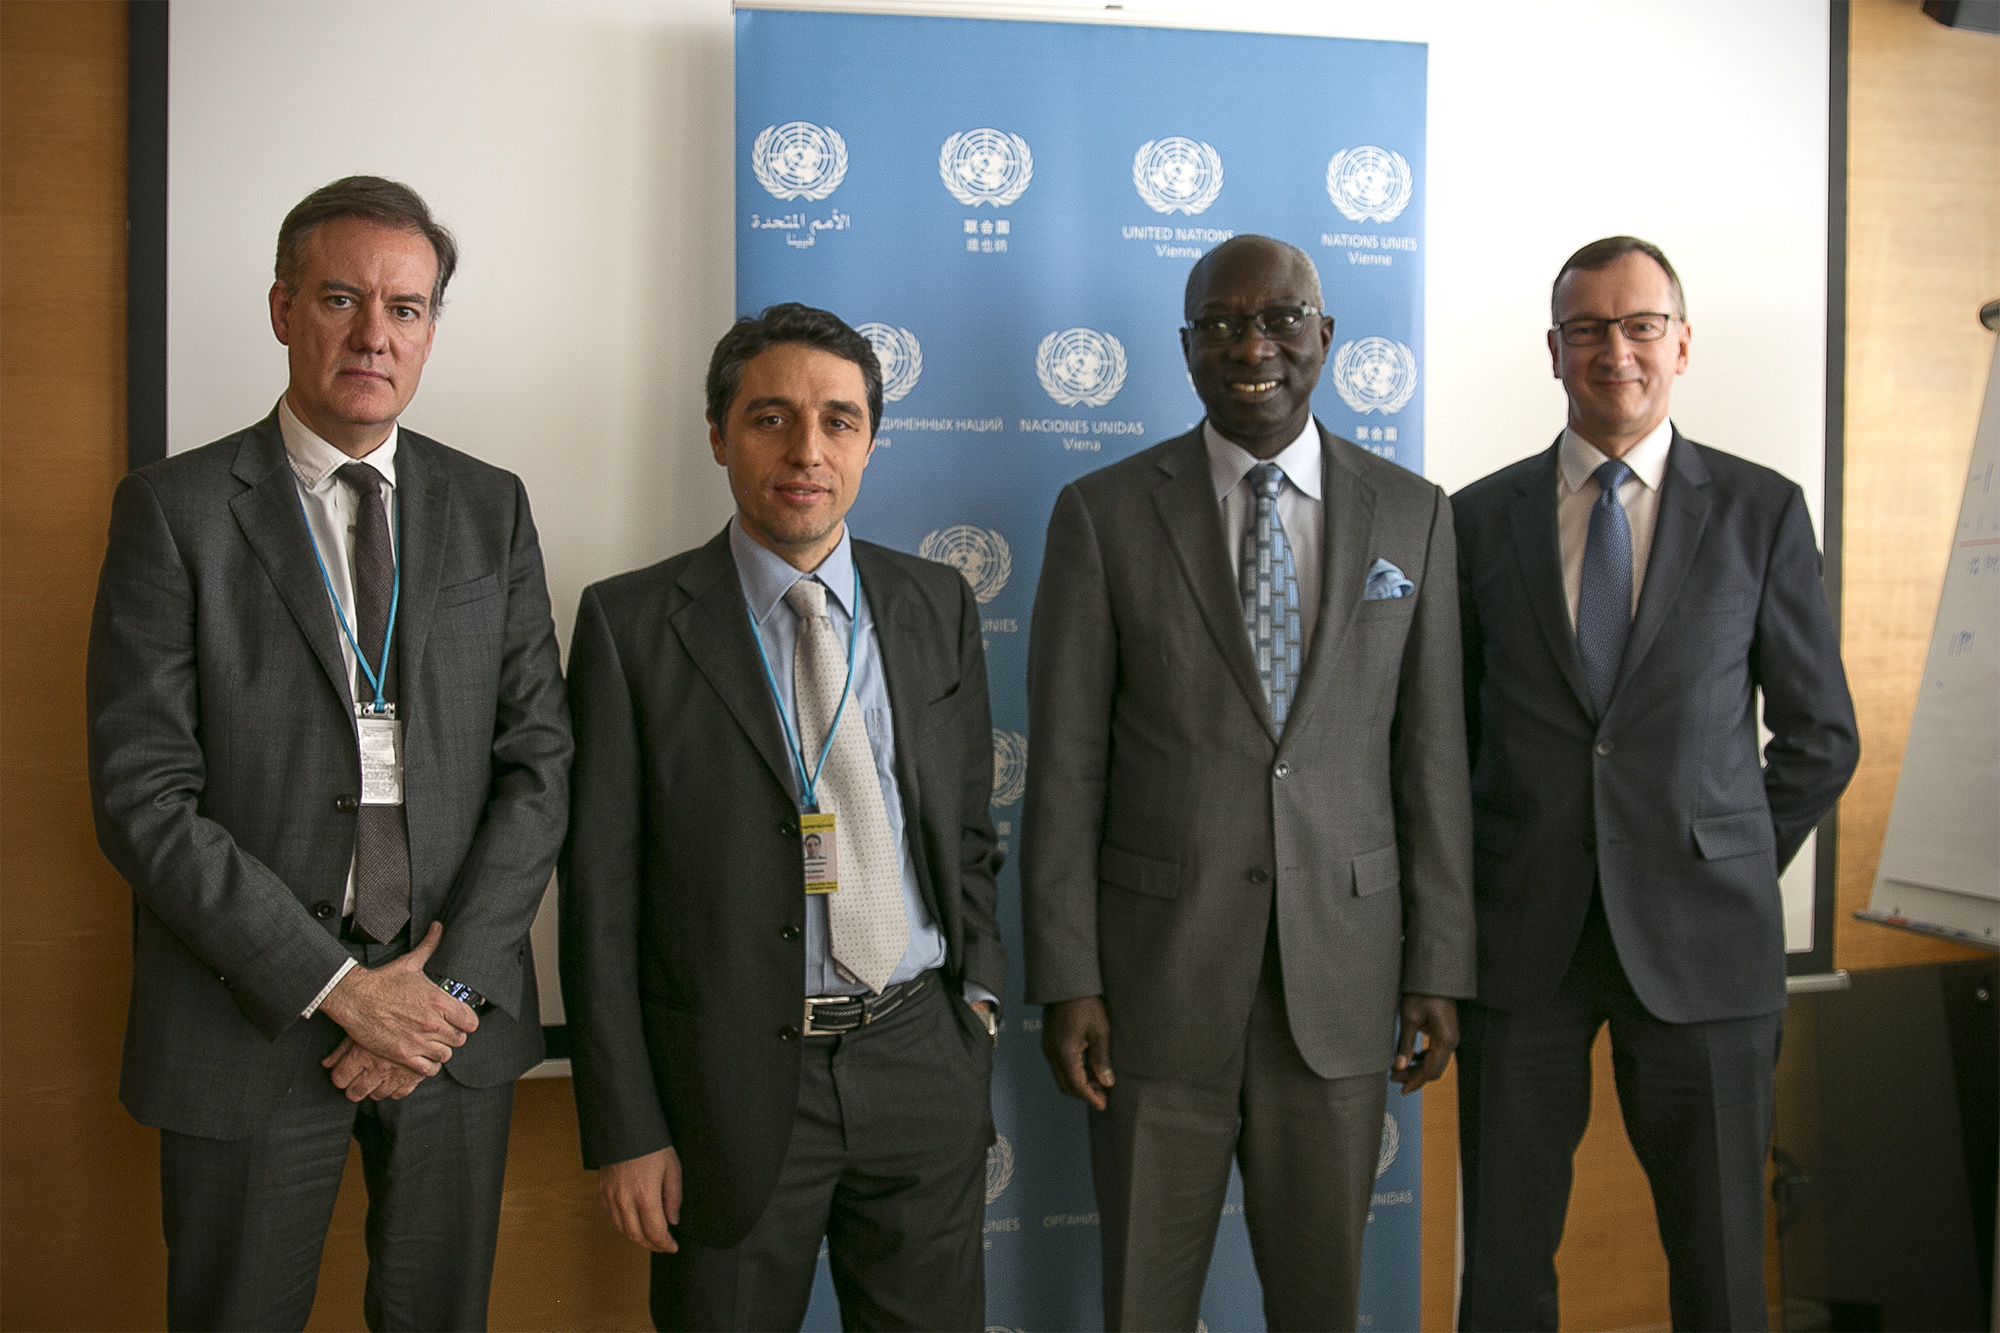 UN Genocide Prevention and KAICIID